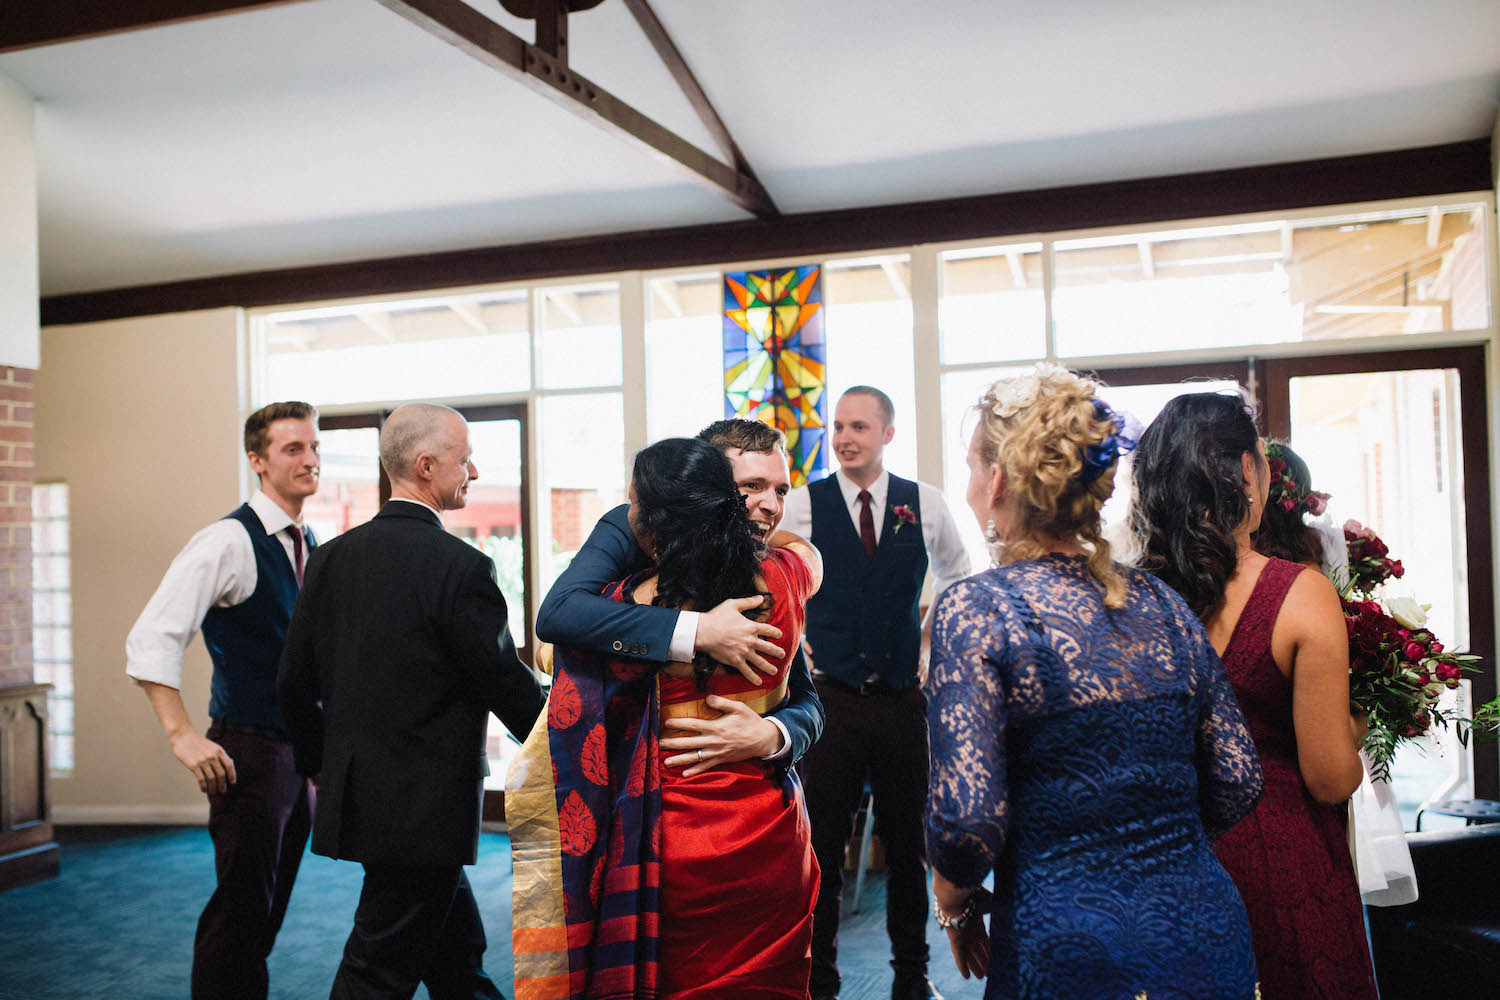 Groom hugging his new Mother-in-Law after his Subiaco wedding Ceremony at St Matthew's Anglican Church